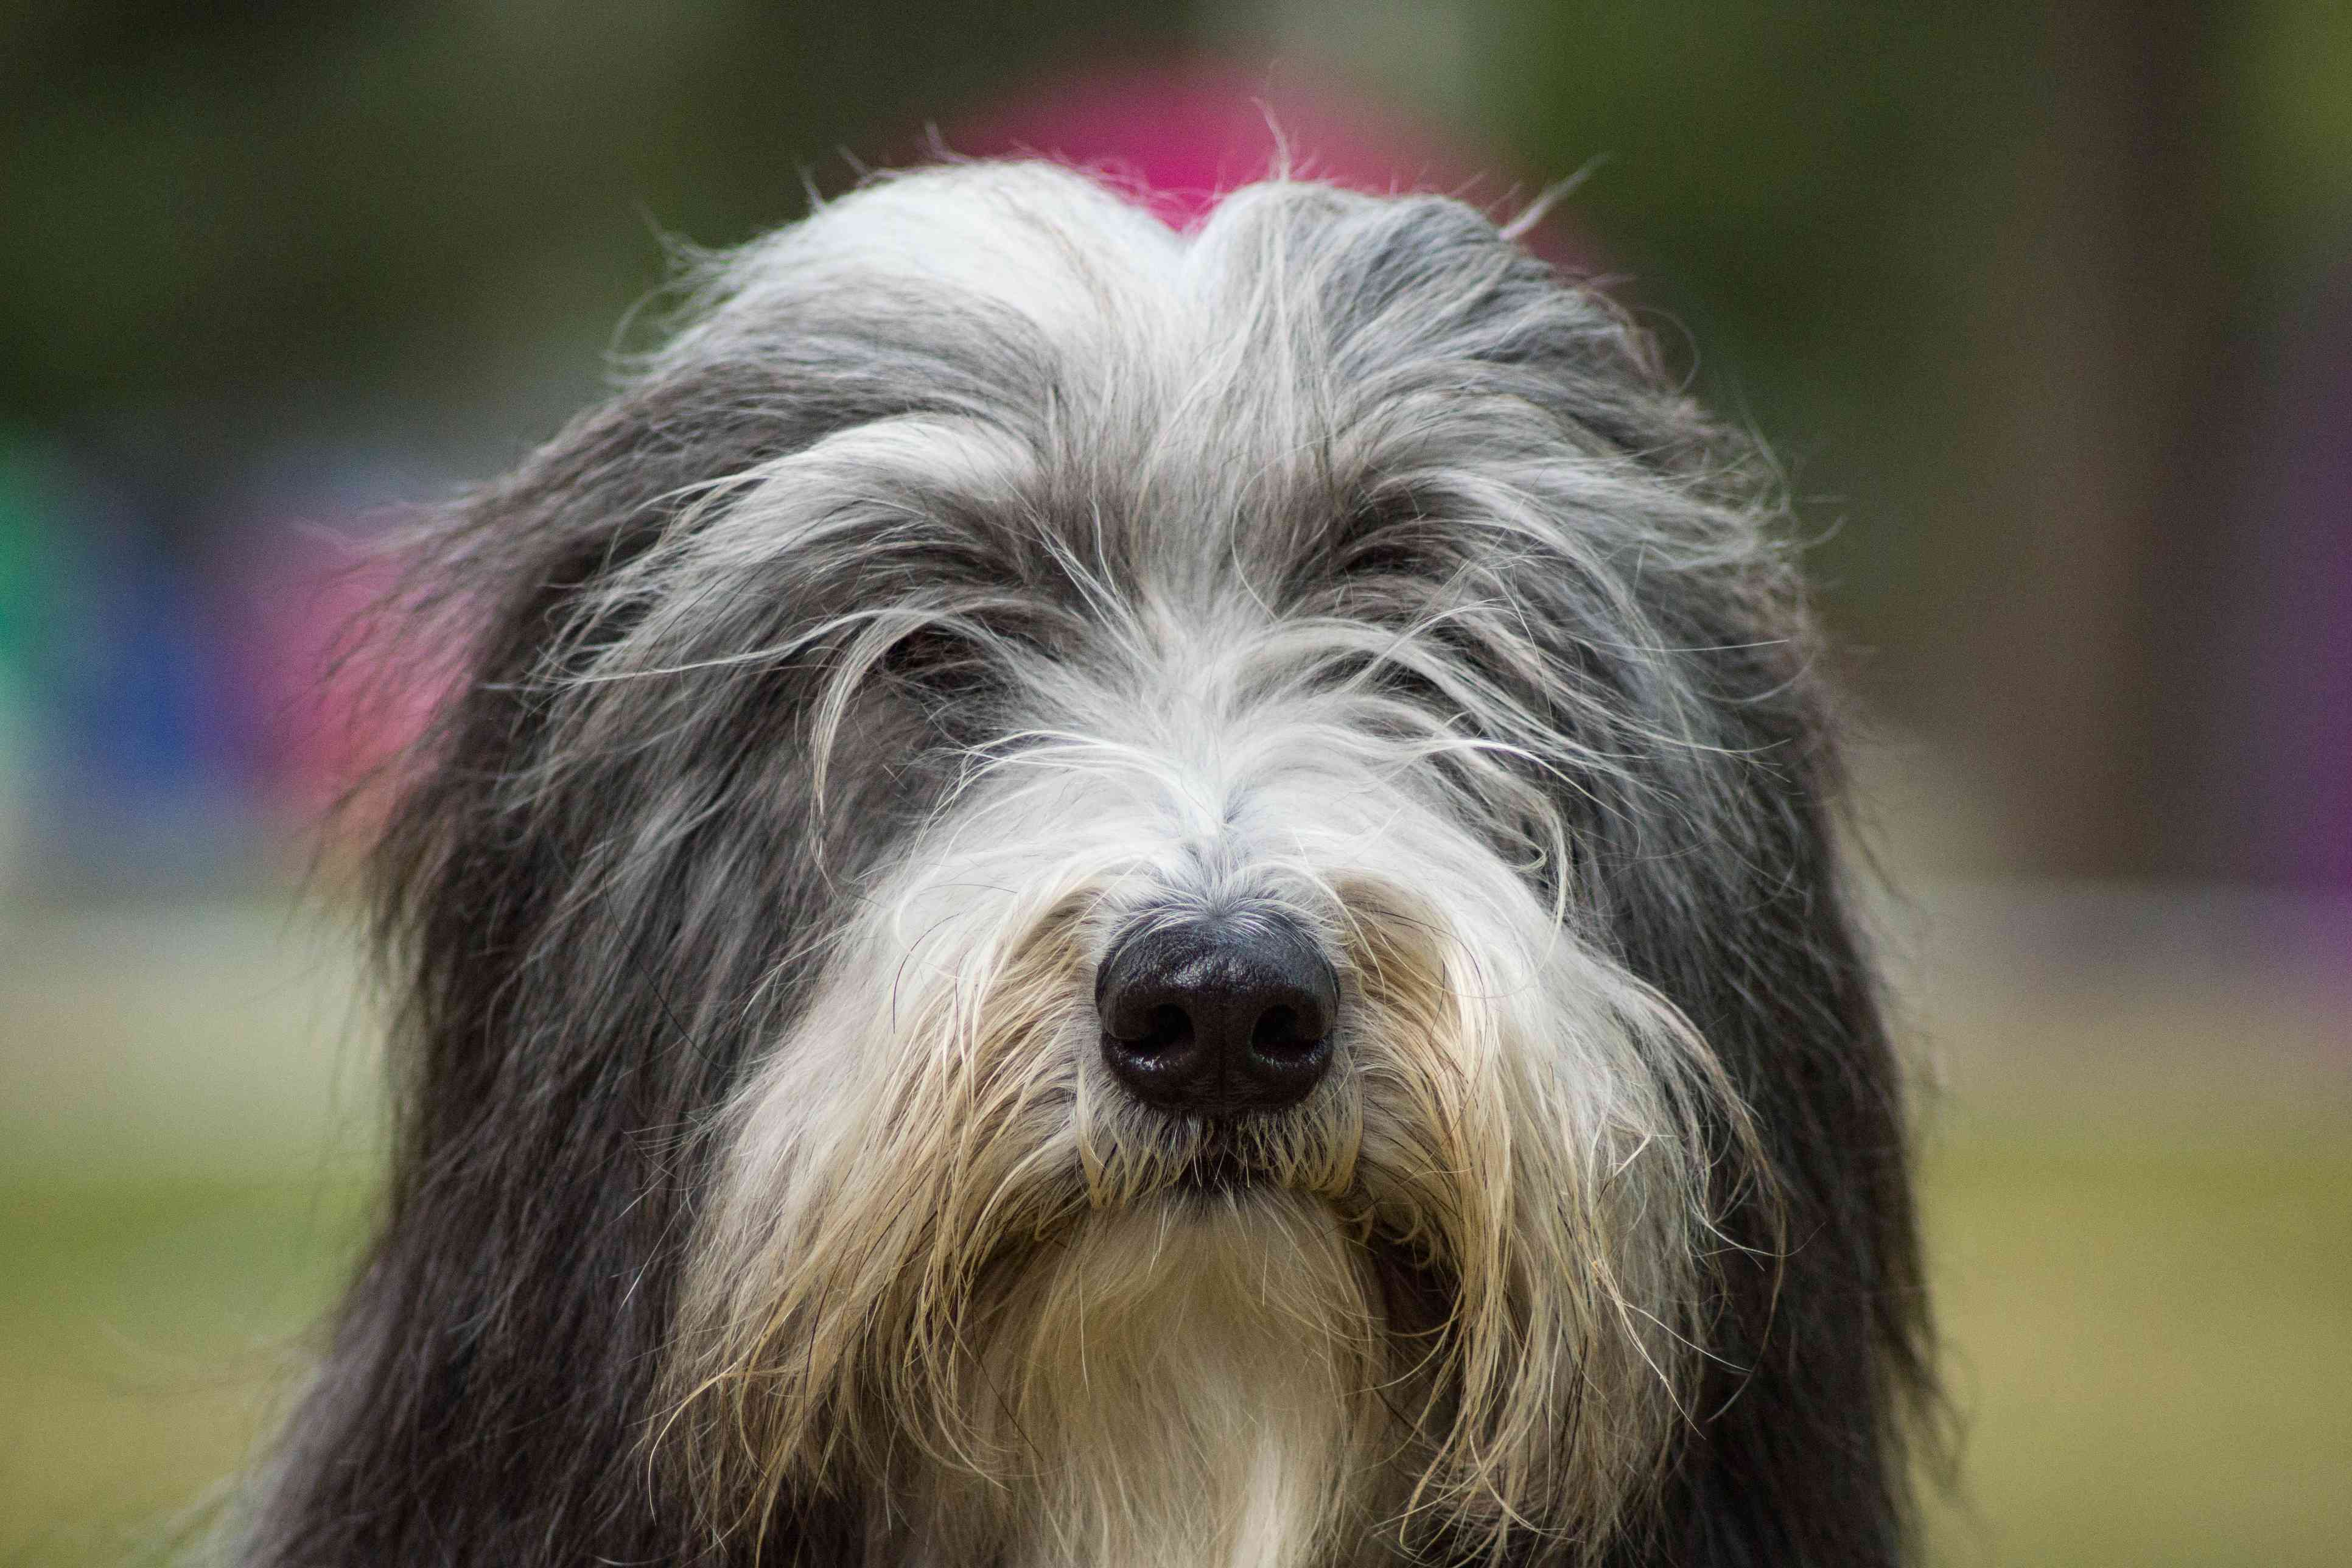 A close-up of a Bearded Collie.